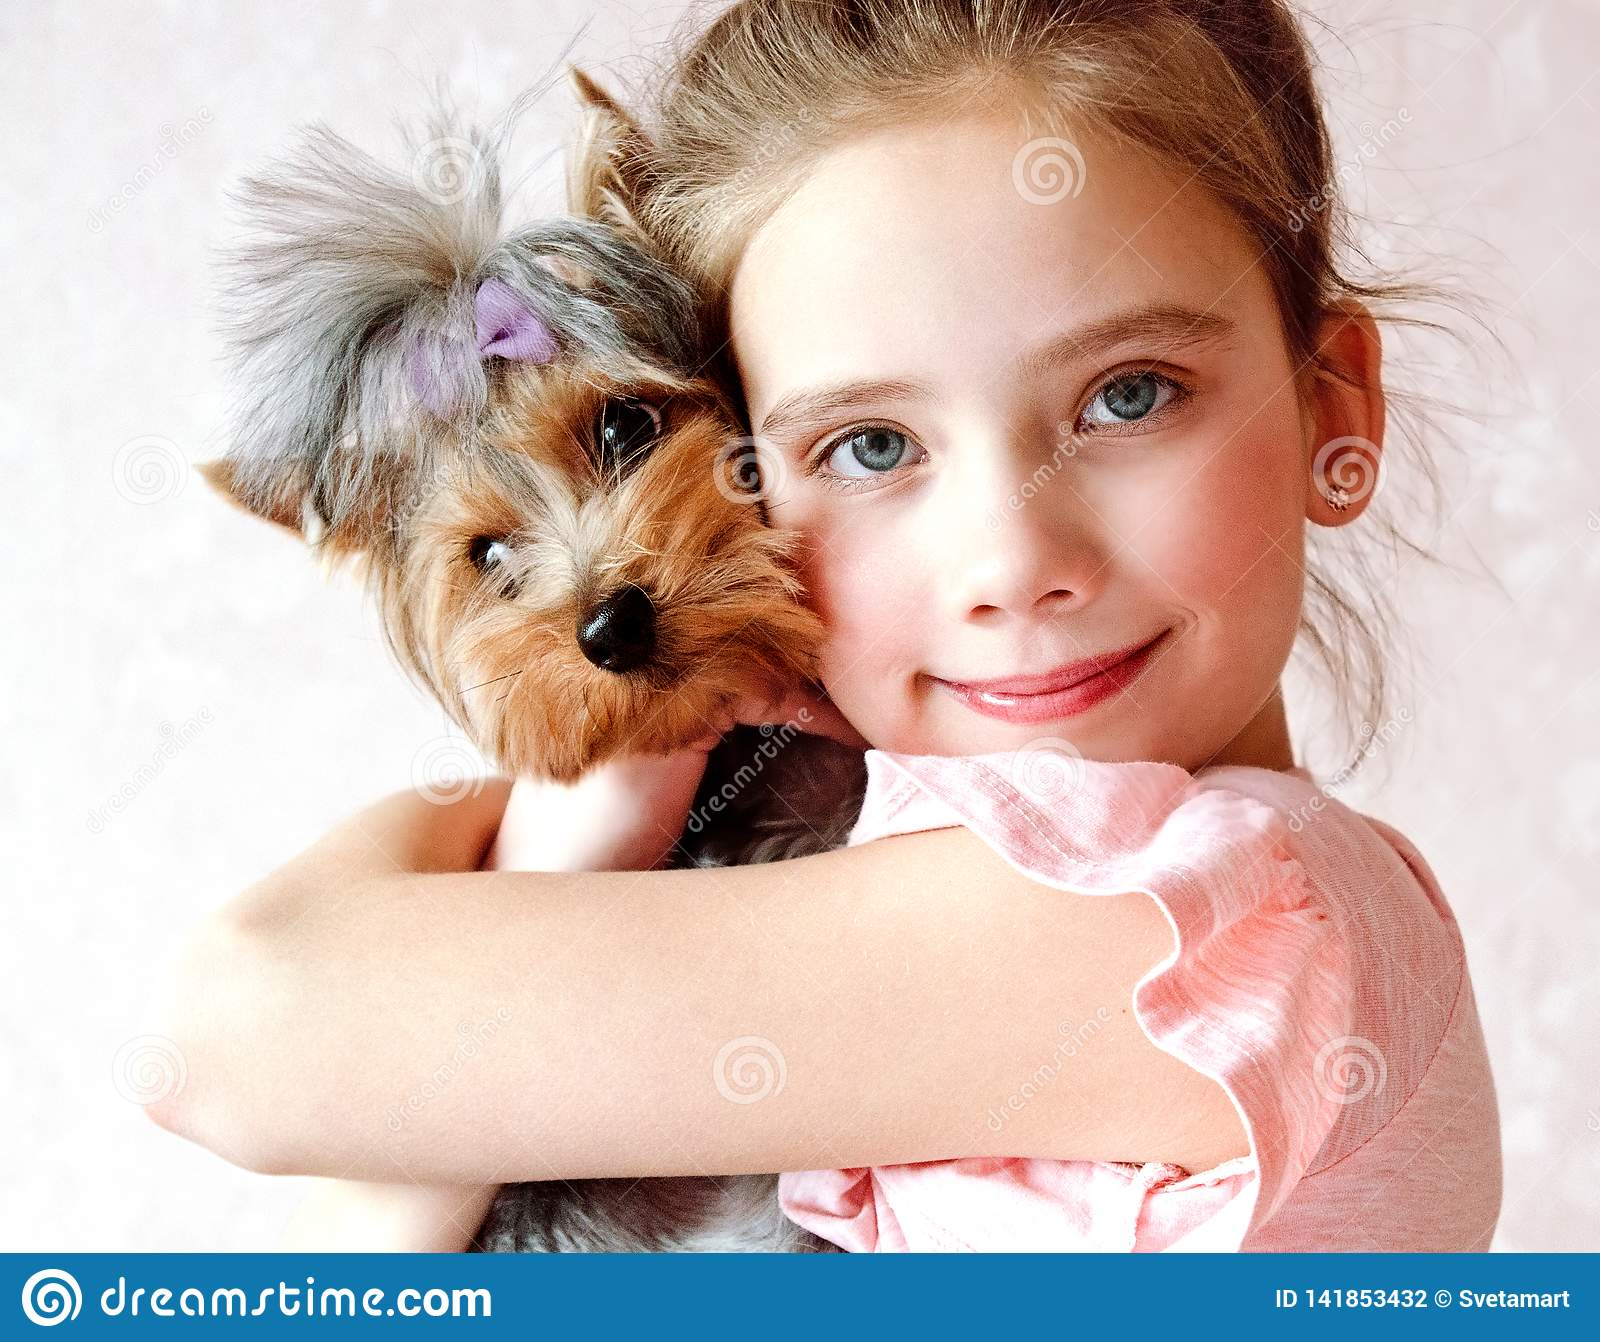 Smiling little girl child holding and playing with puppy yorkshire terrier